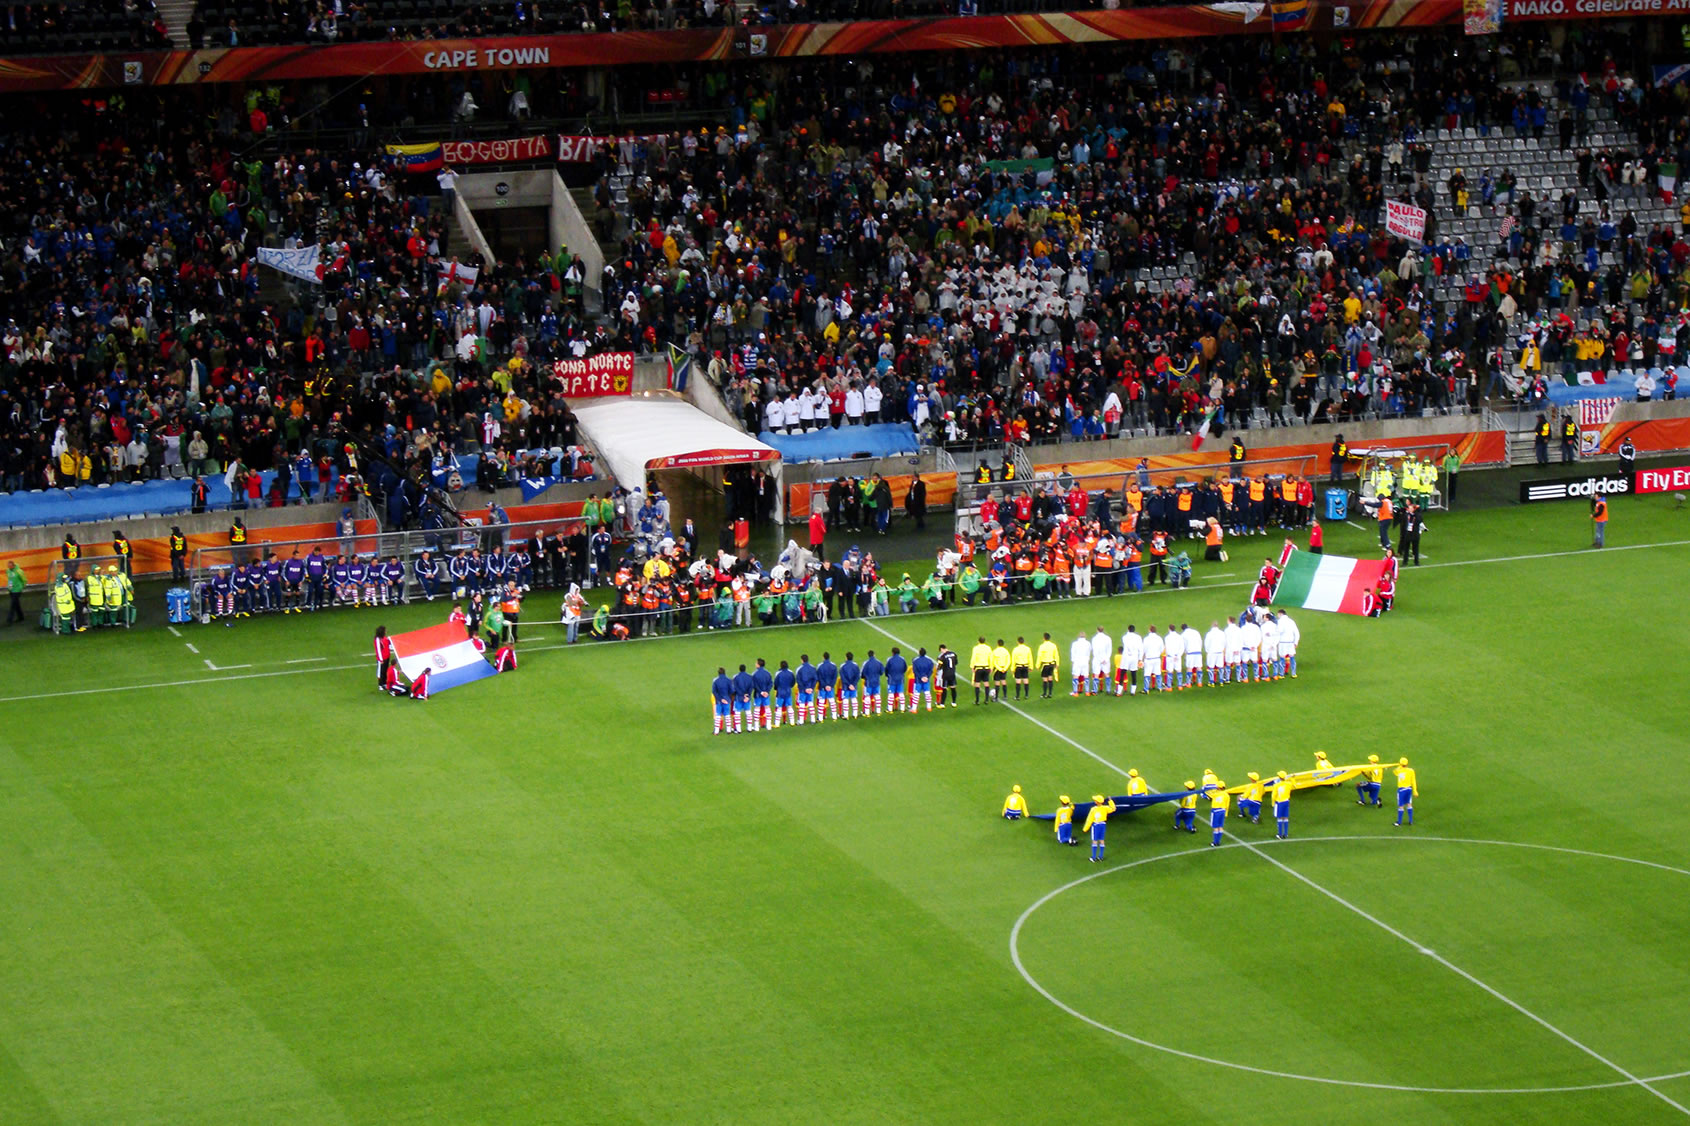 Paraguay_vs._Italy_-_FIFA_World_Cup_2010_%28National_anthems%29.jpg